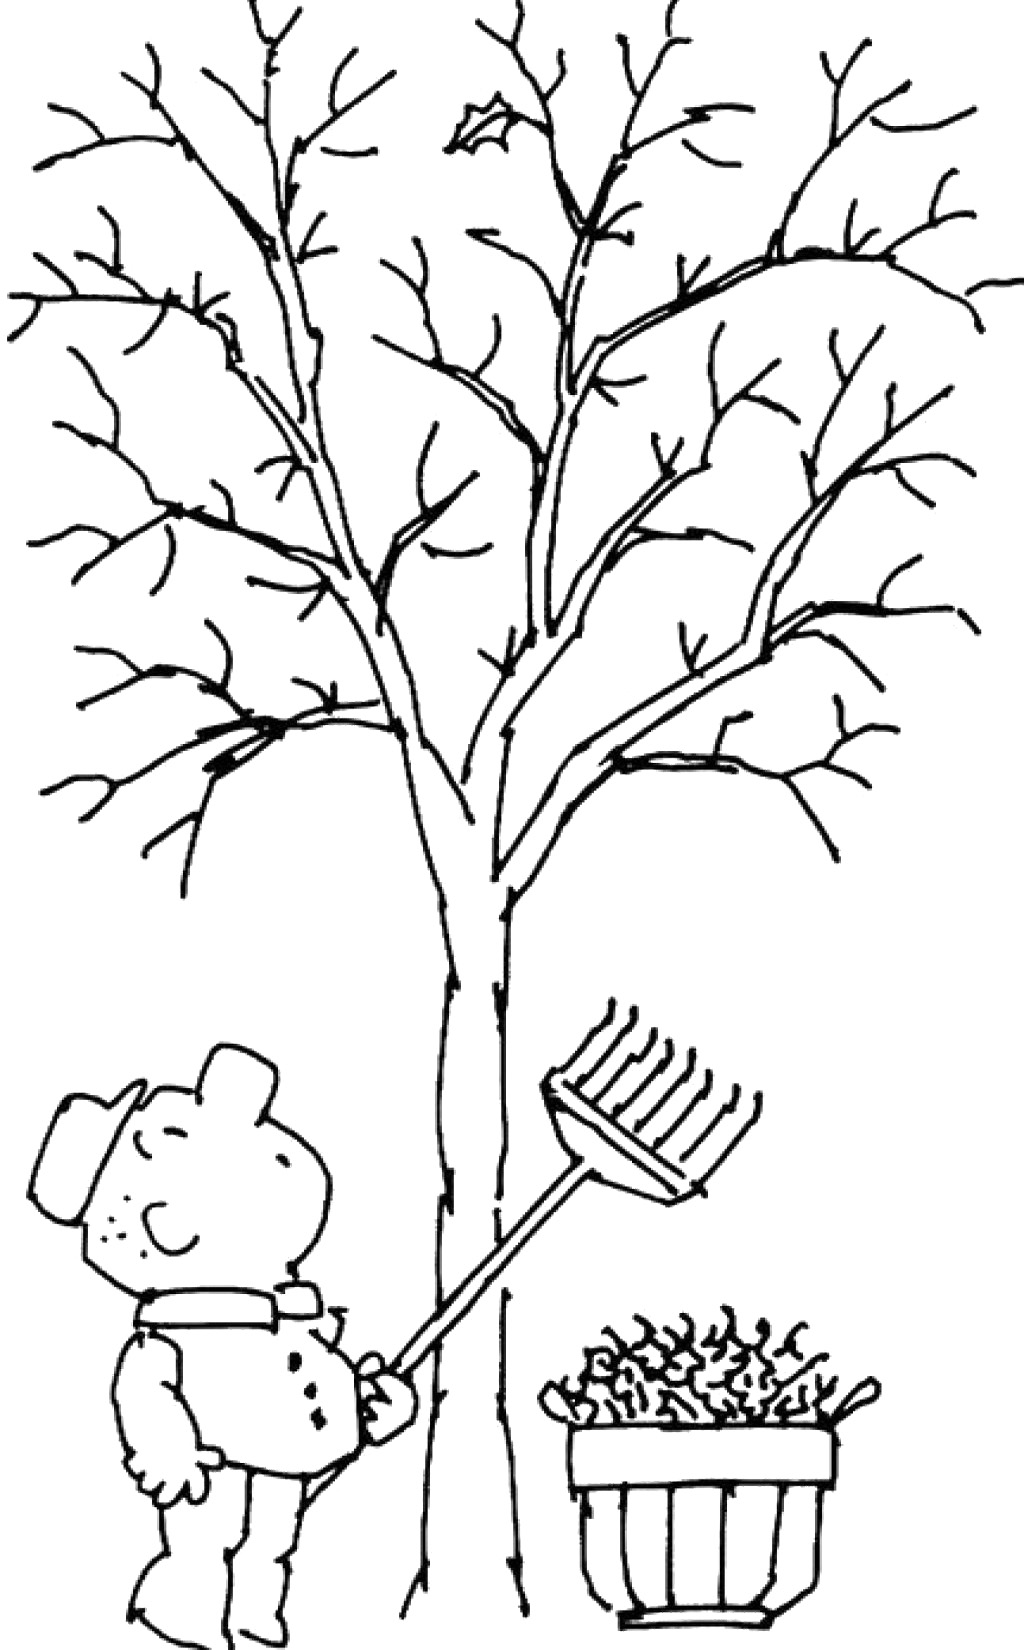 Tree Without Leaves Coloring Page To Print And Download Coloring Pages Of Trees Without Leaves